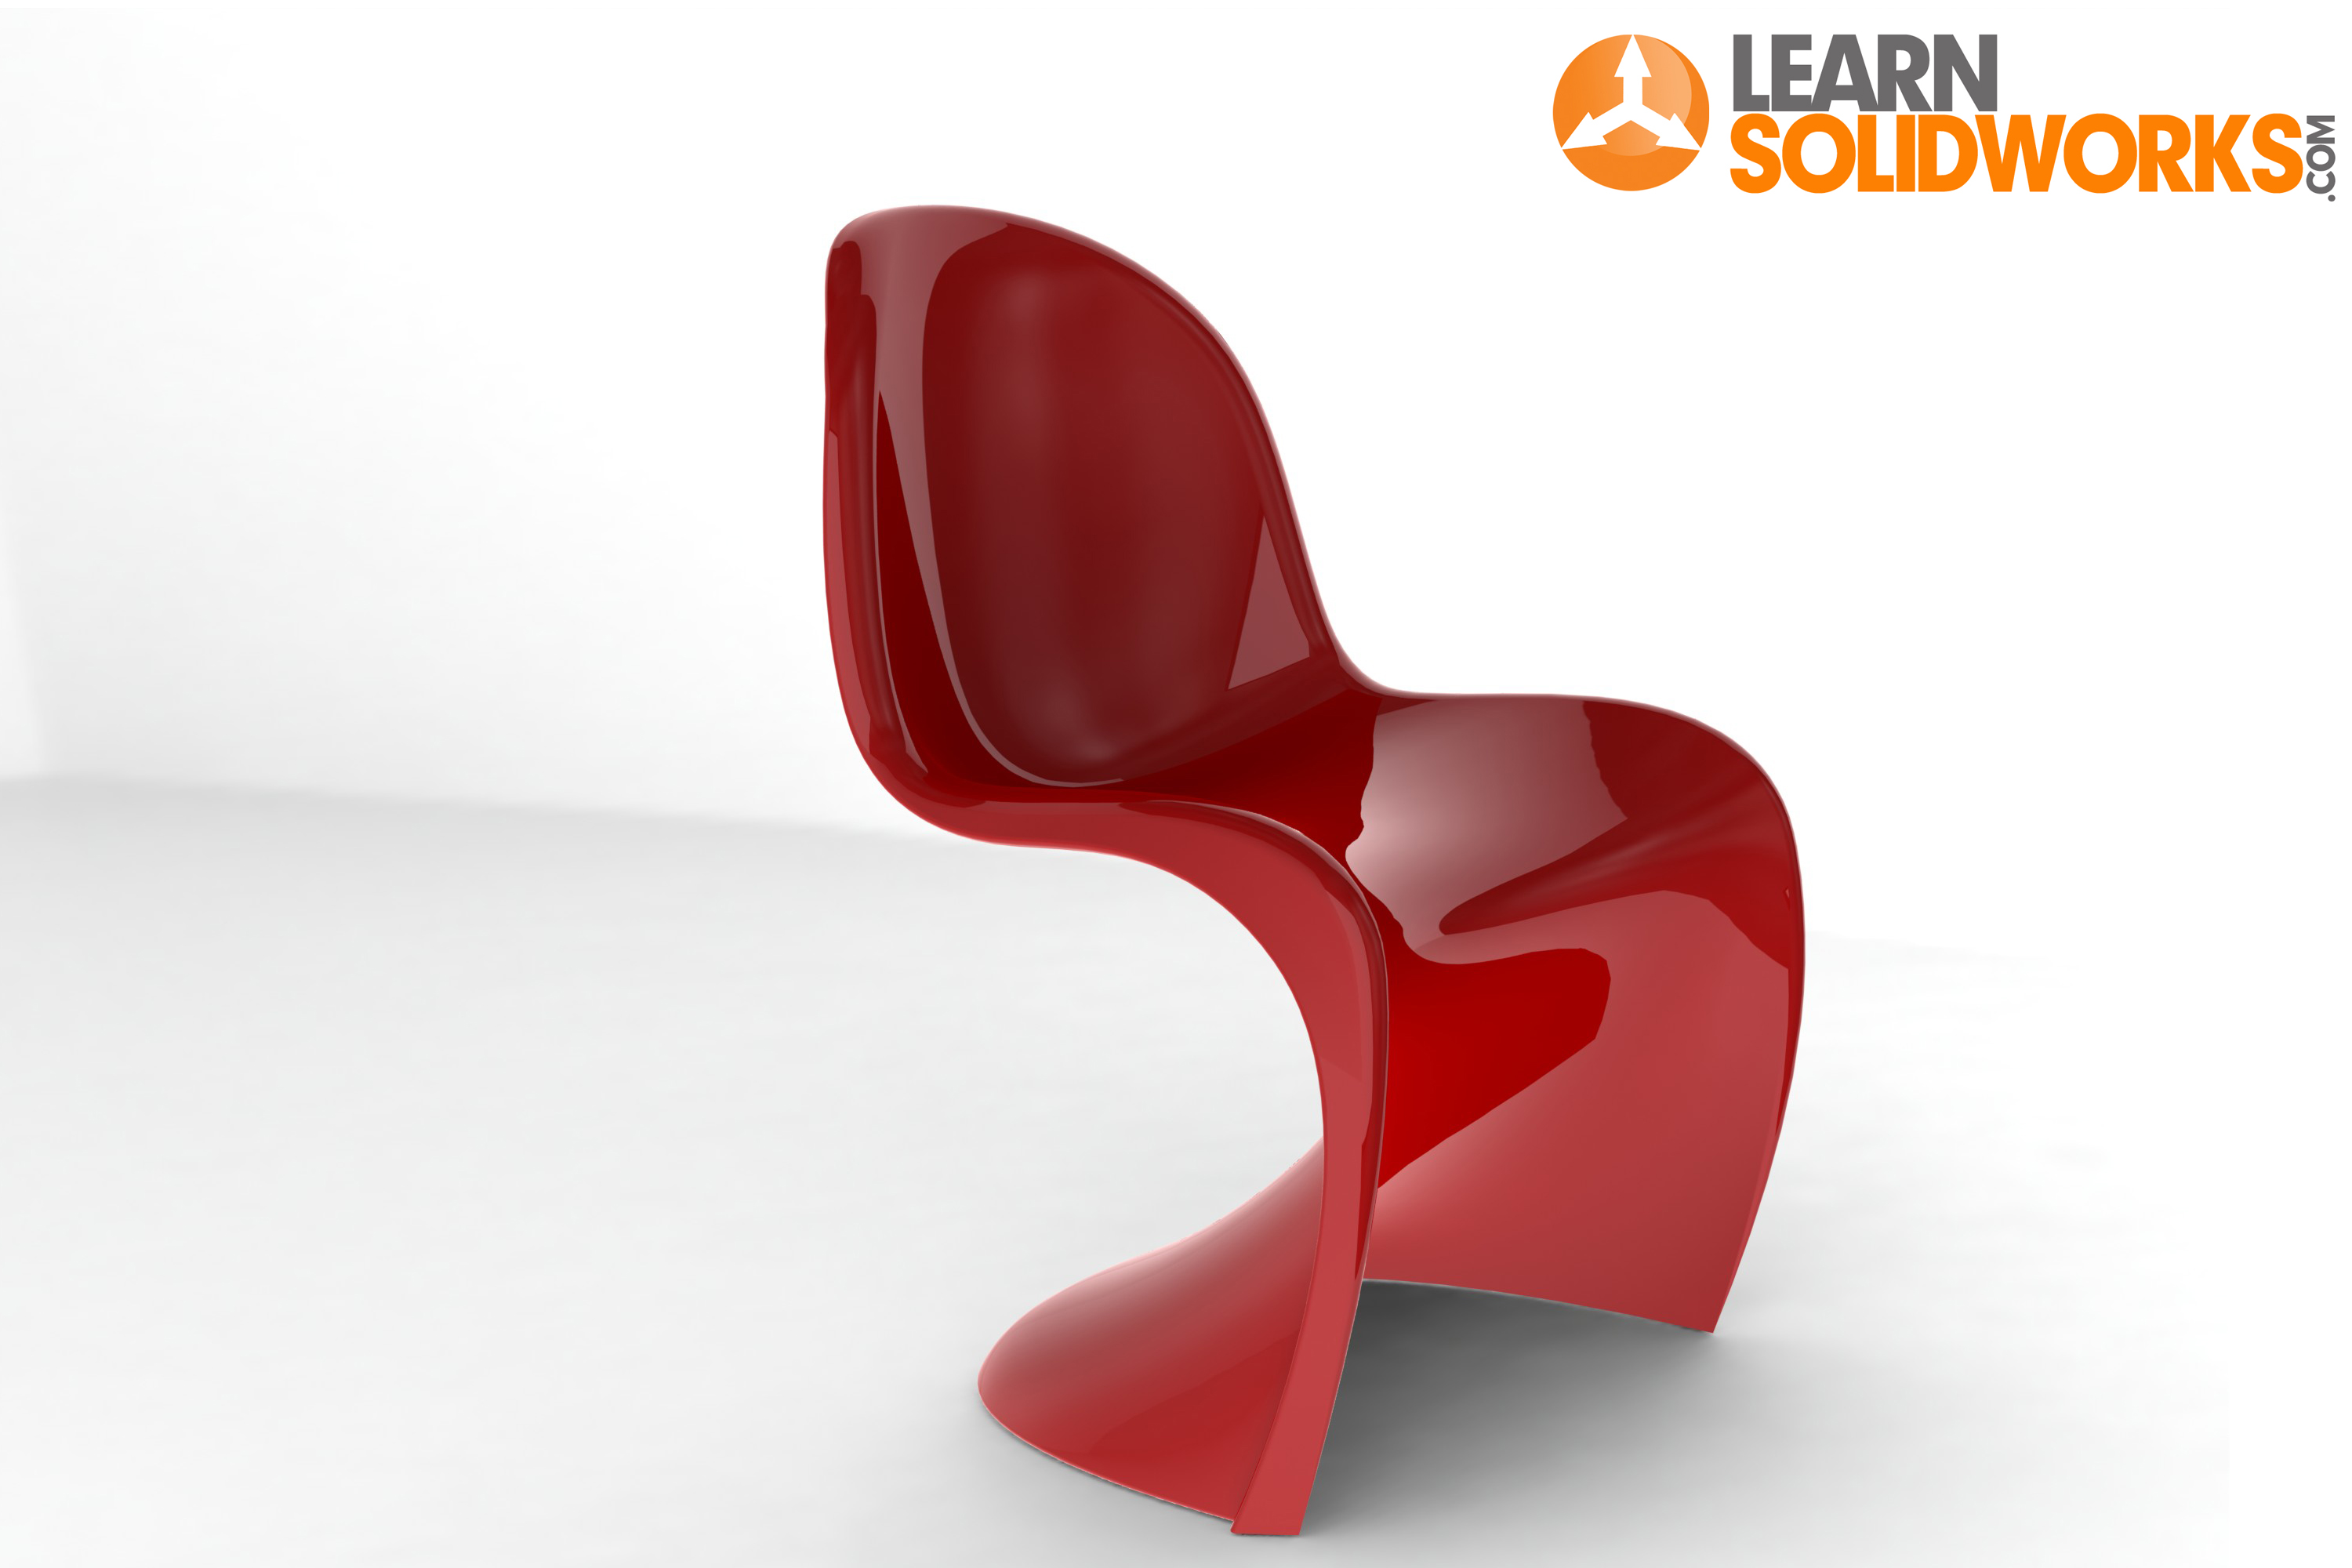 Panton Stuhl Original how to model a panton chair in solidworks grabcad questions